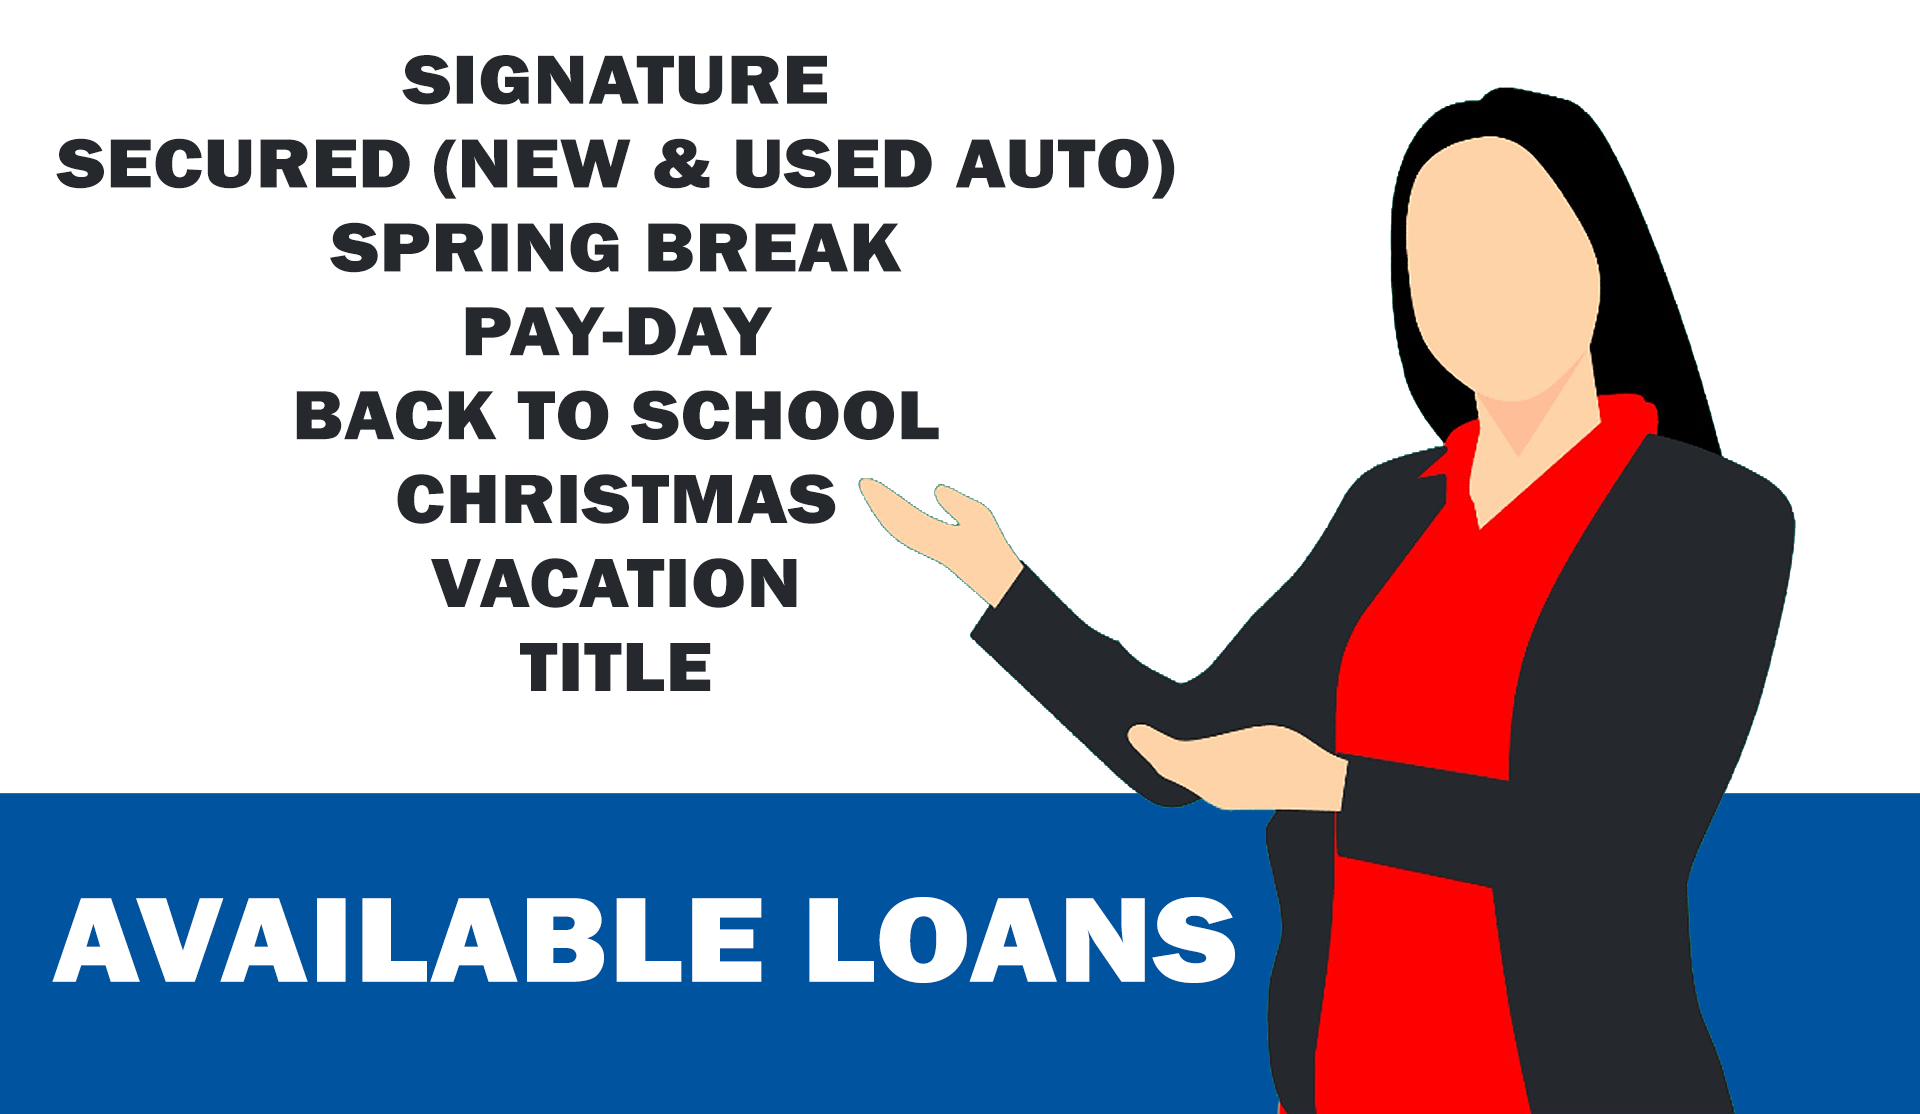 AvailableLoansTSUCreditUnion